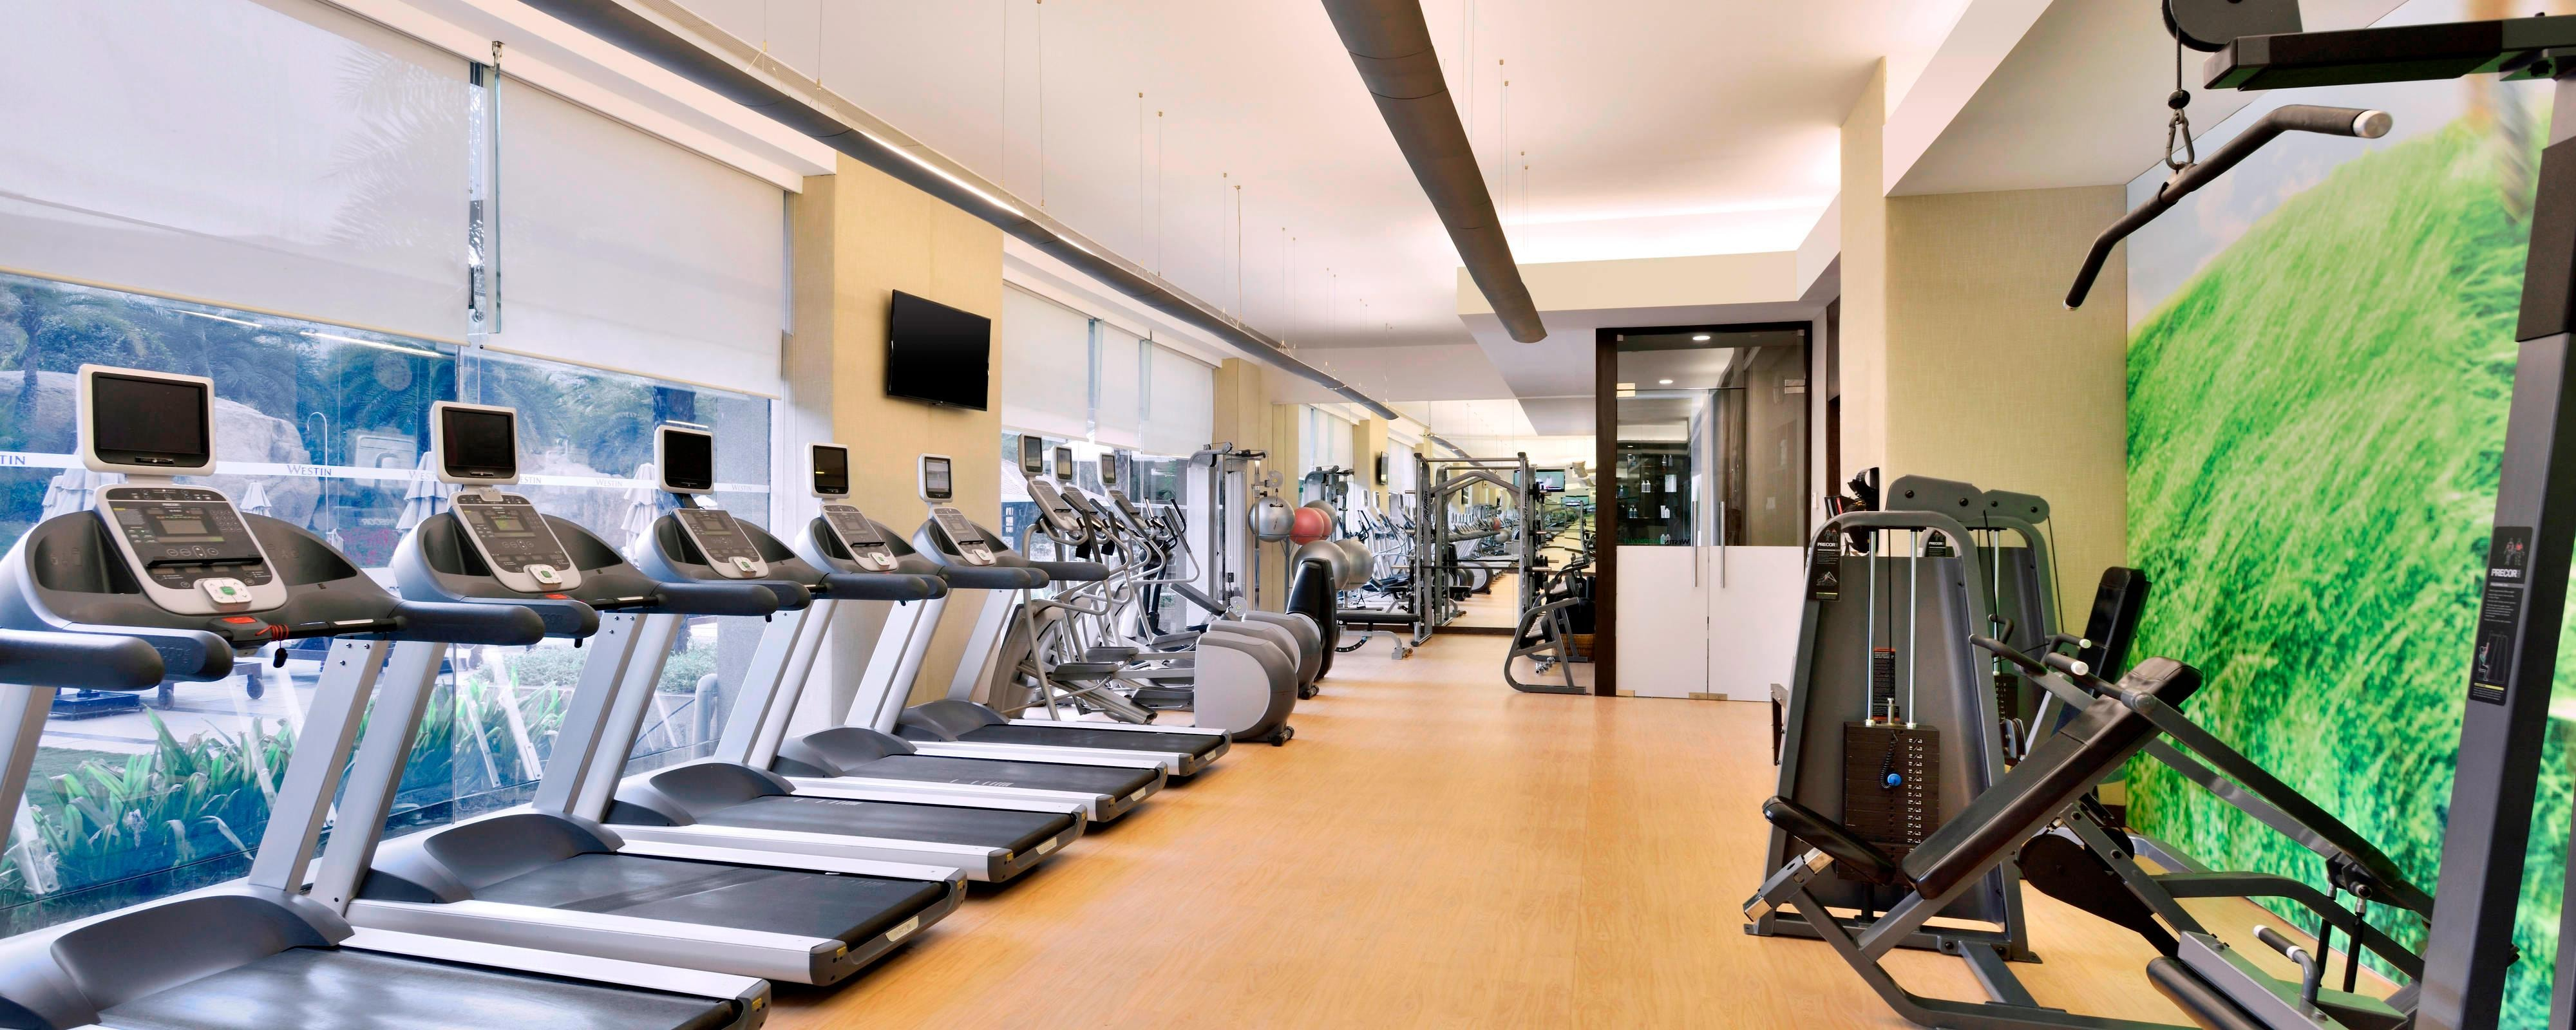 Hotel Gym In Hyderabad Recreation Activities At The The